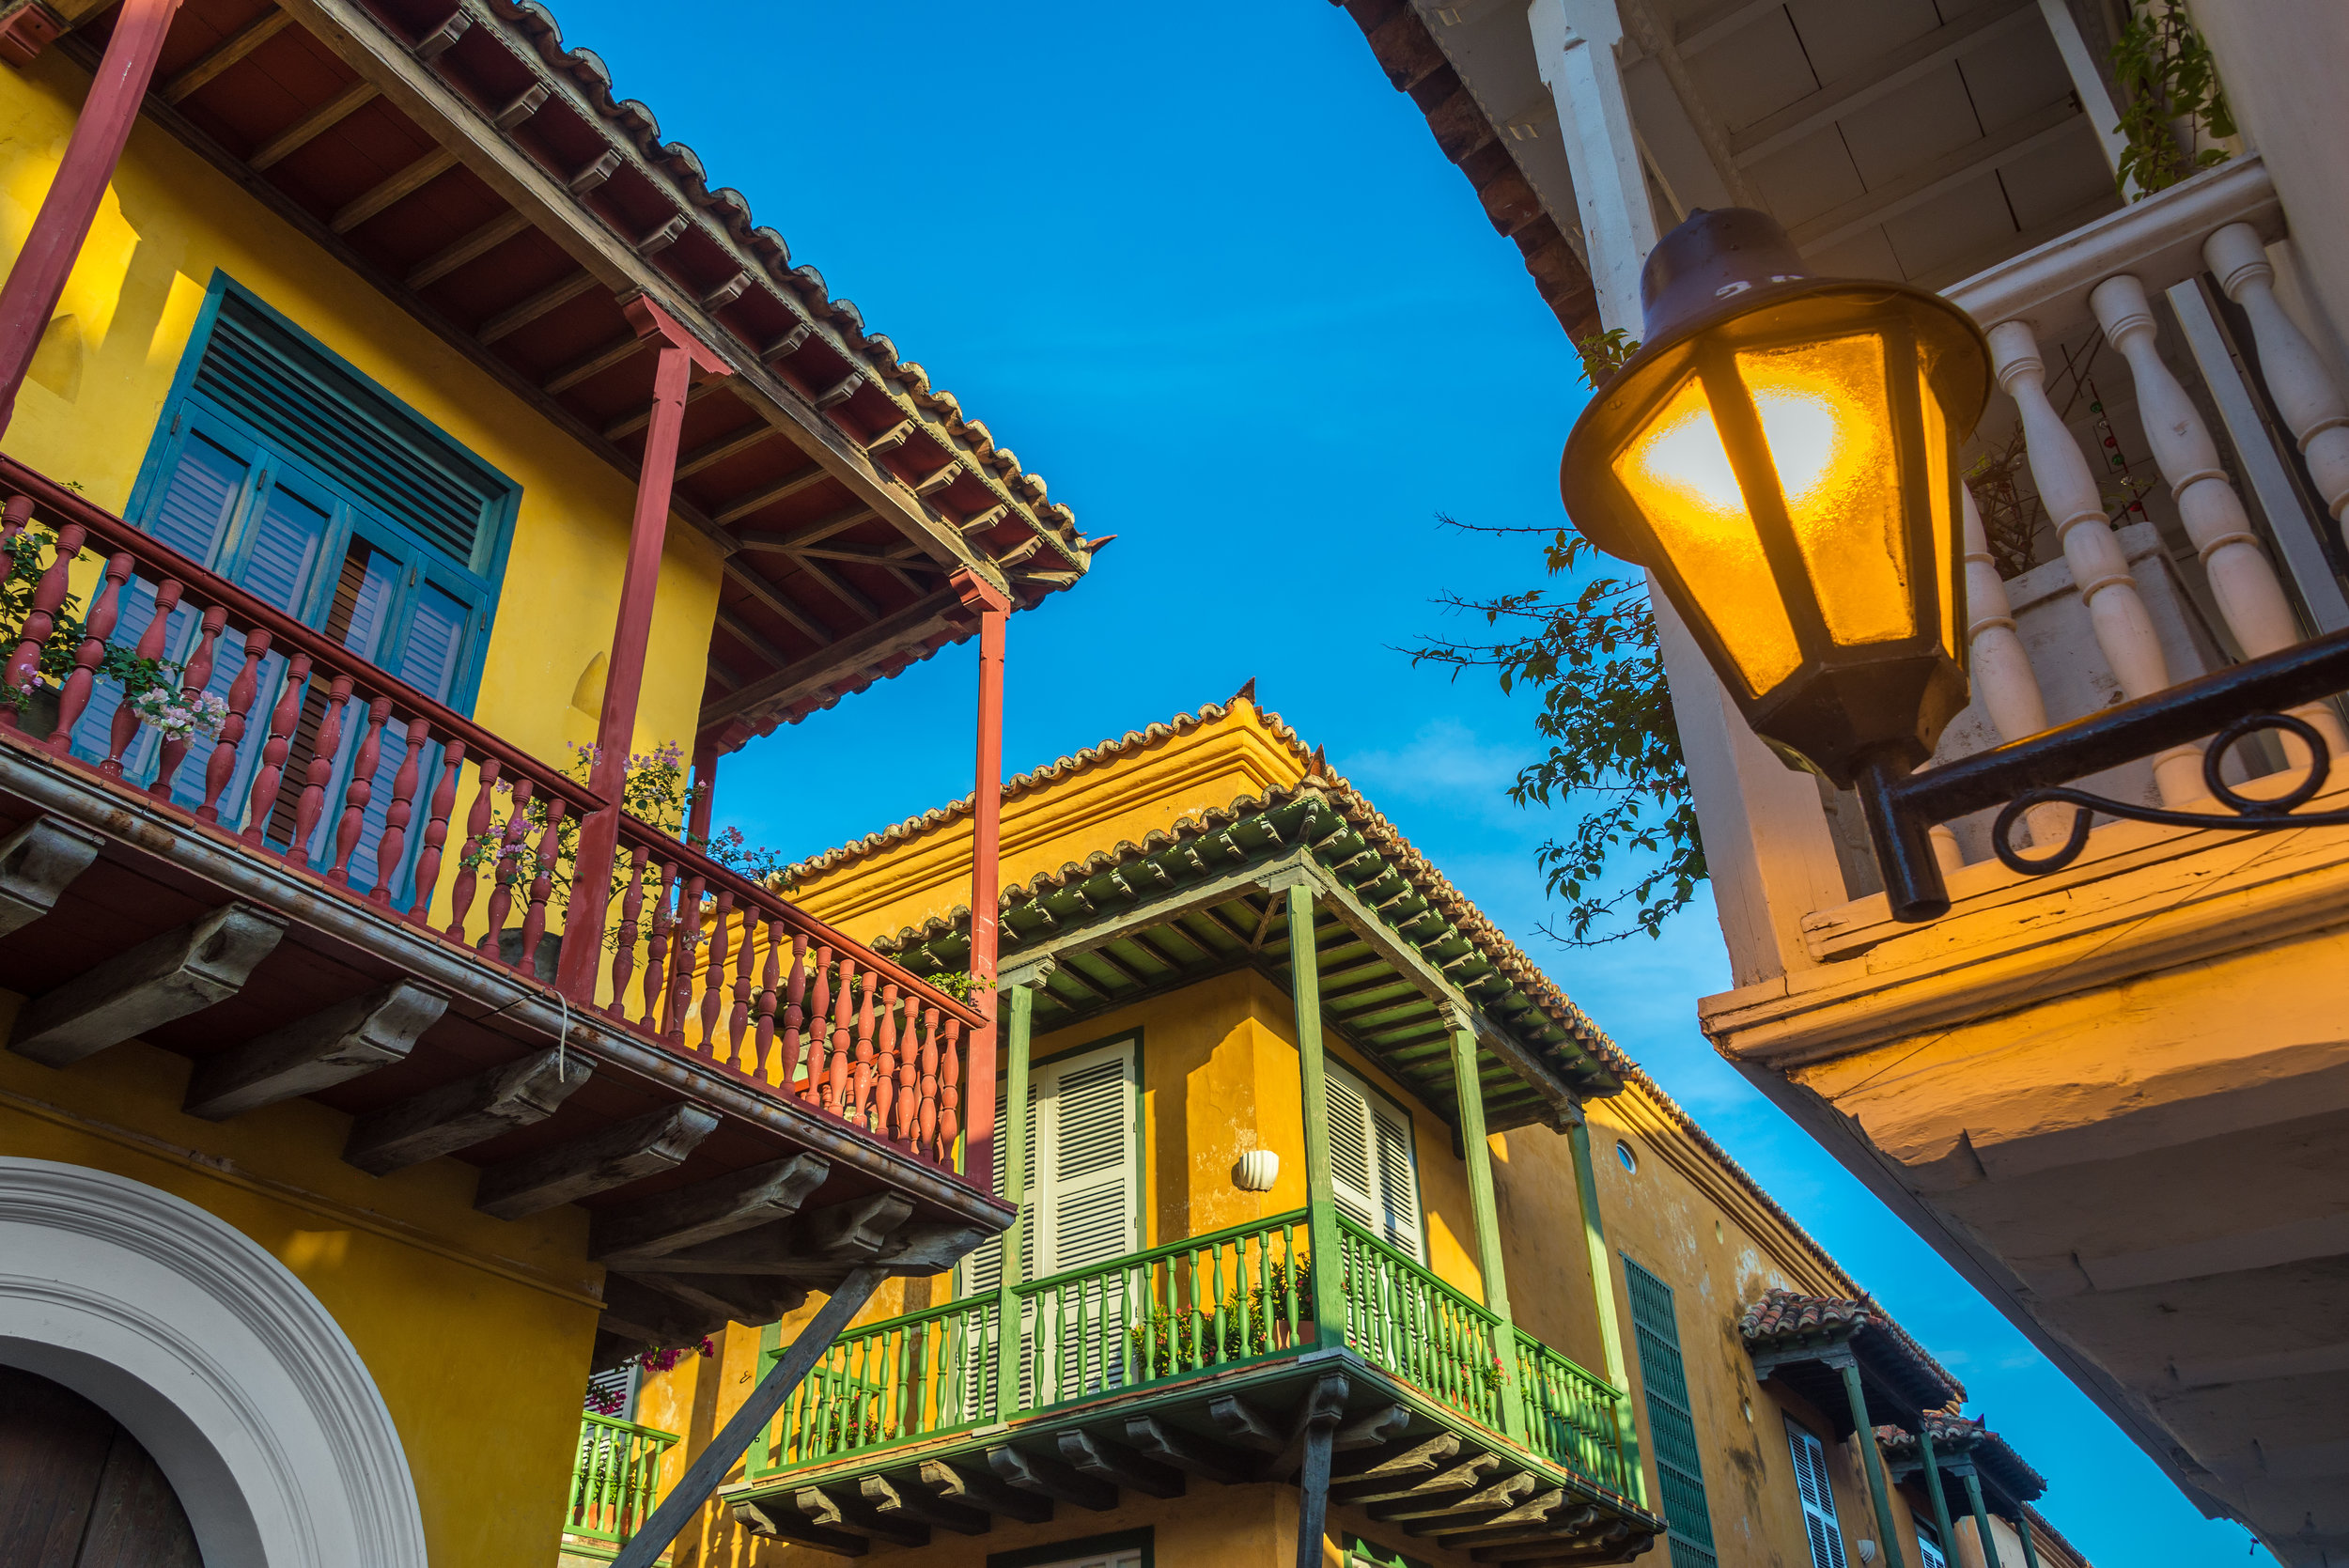 colombia_bigstock-Three-Balconies-56679050.jpg